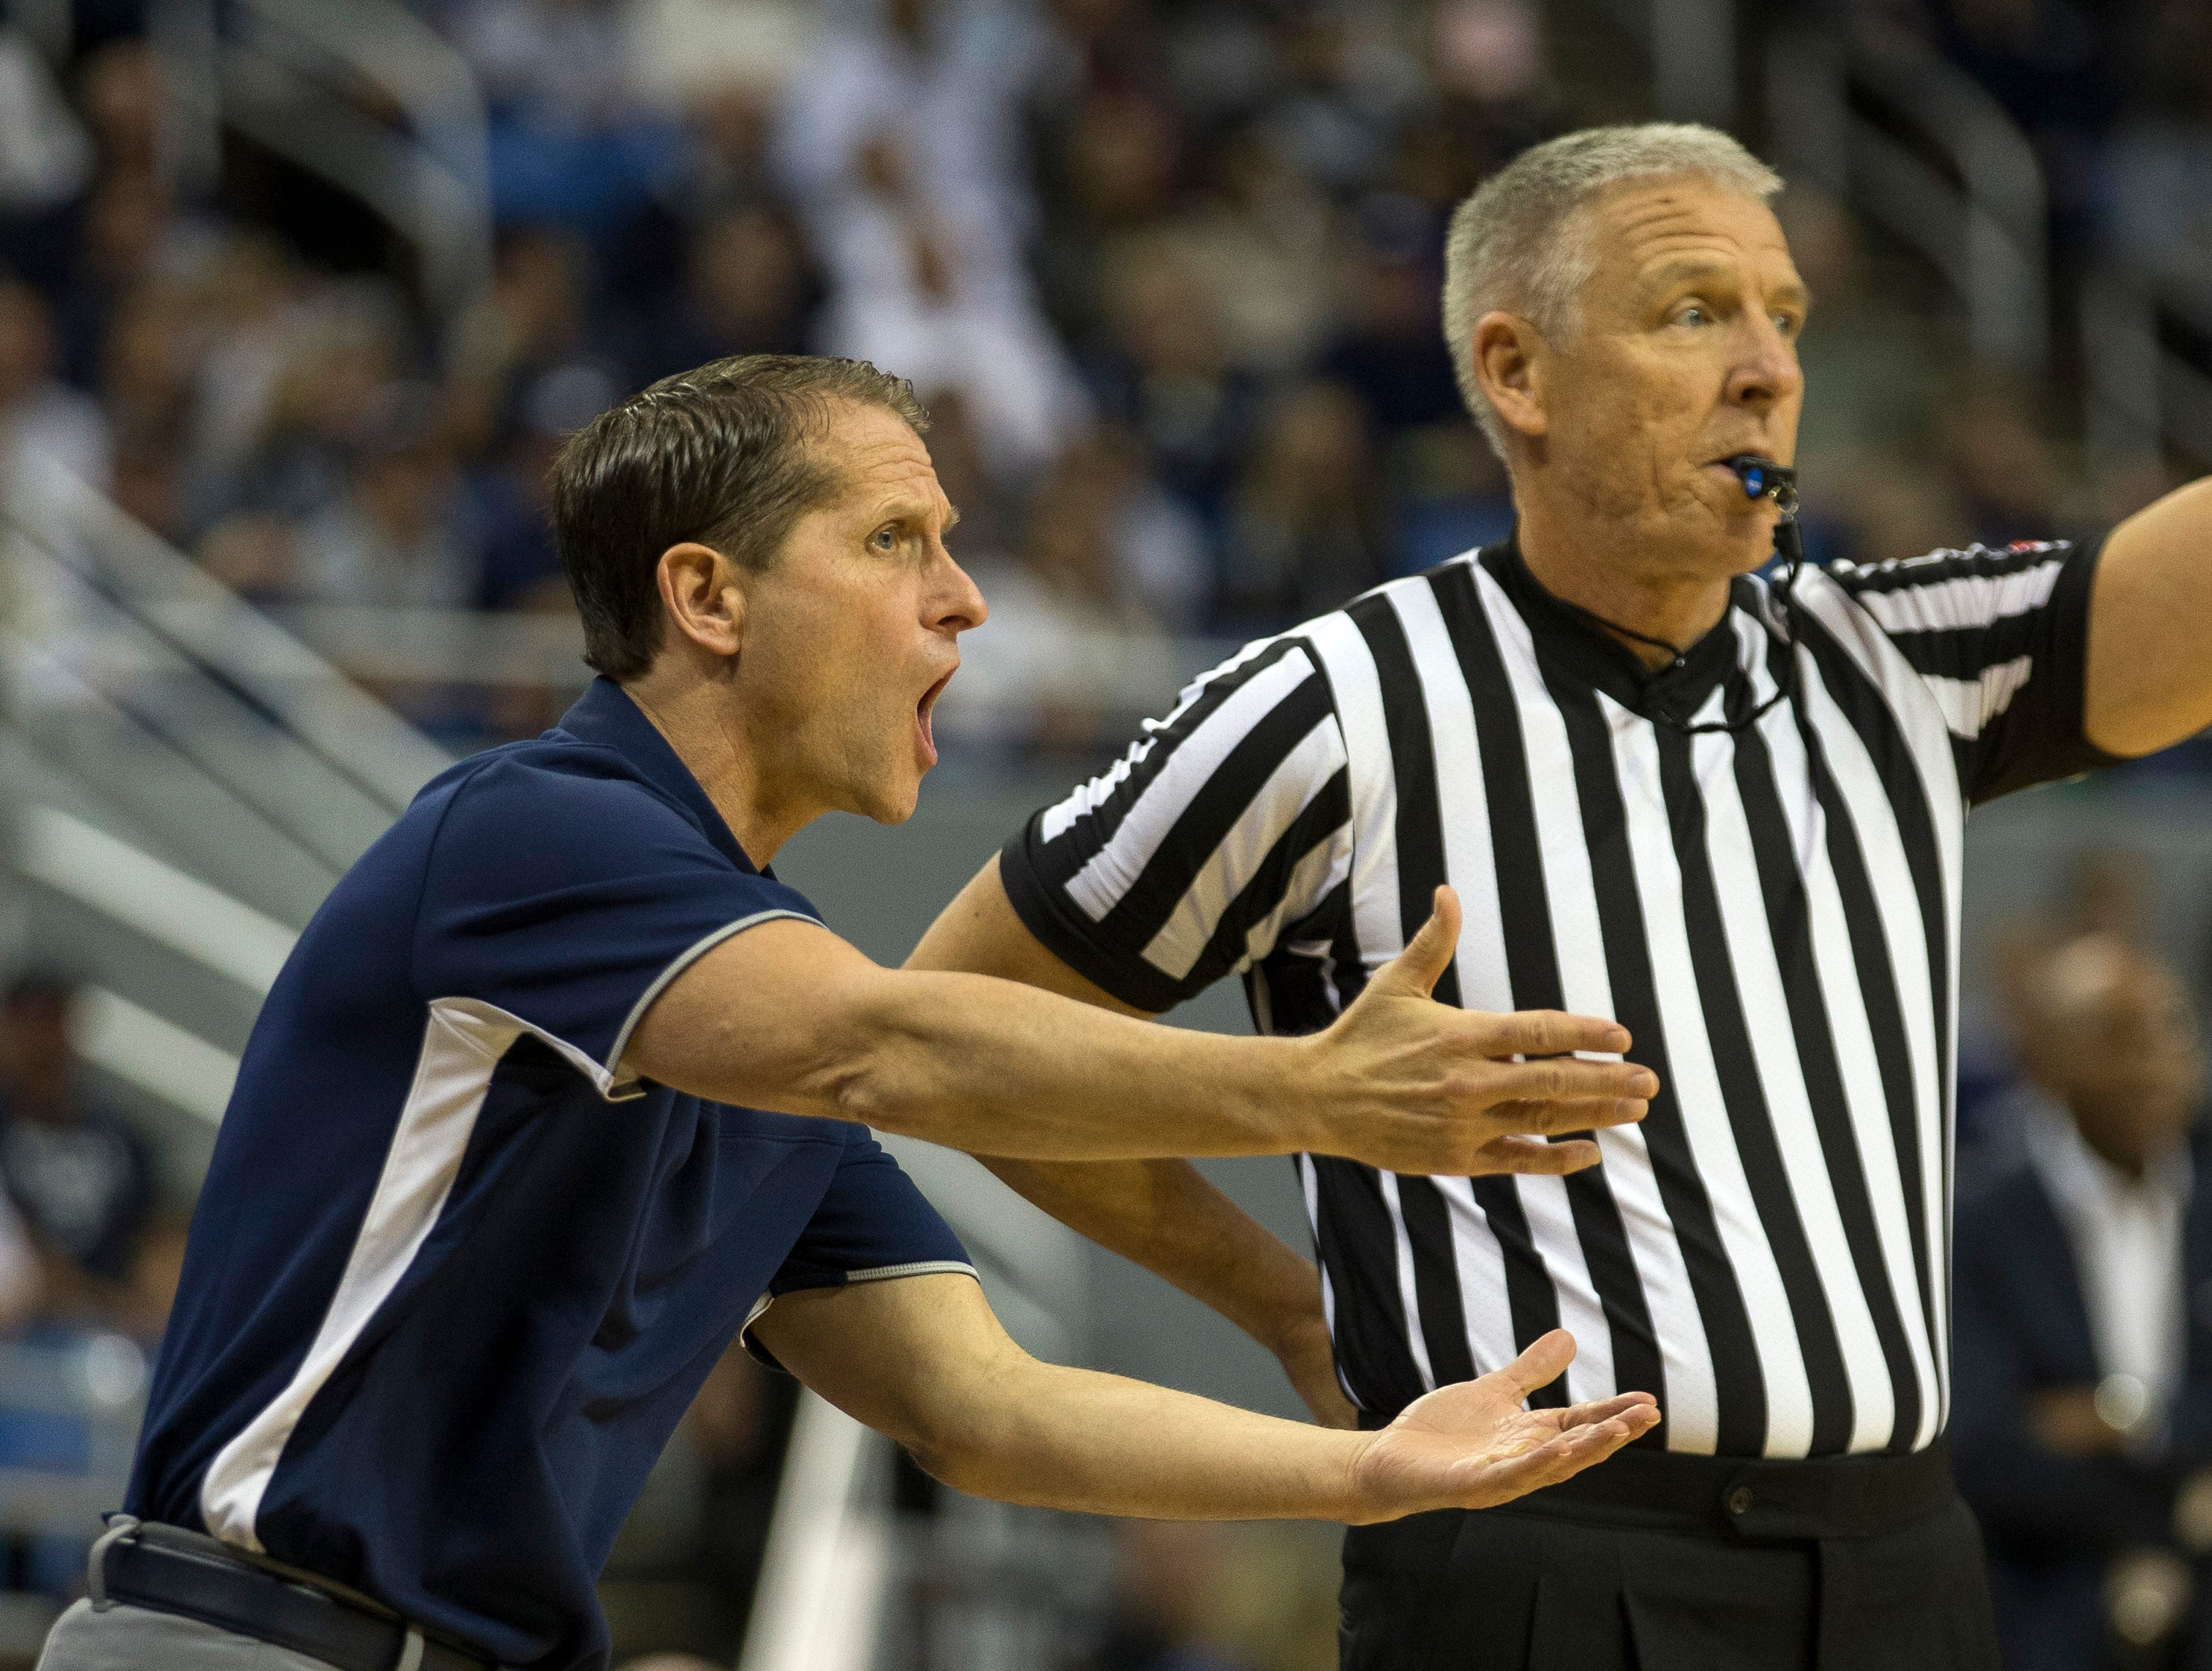 Nevada Nevada head coach Eric Musselman talks with a referee in the first half of an NCAA college basketball game against Little Rock in Reno, Nev., Friday, Nov. 16, 2018. (AP Photo/Tom R. Smedes)